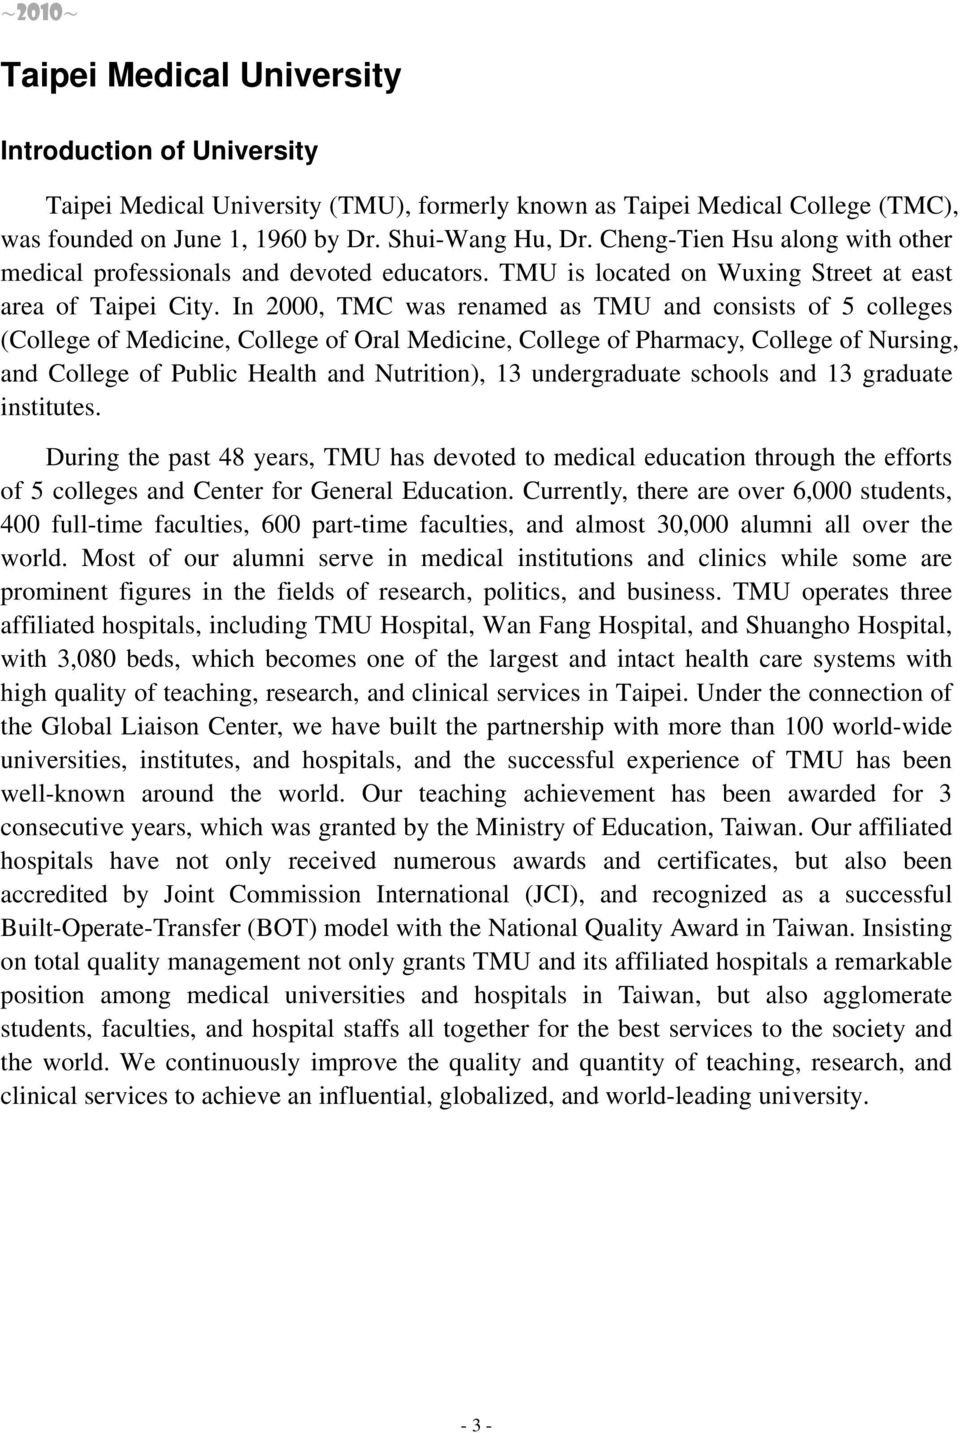 In 2000, TMC was renamed as TMU and consists of 5 colleges (College of Medicine, College of Oral Medicine, College of Pharmacy, College of Nursing, and College of Public Health and Nutrition), 13